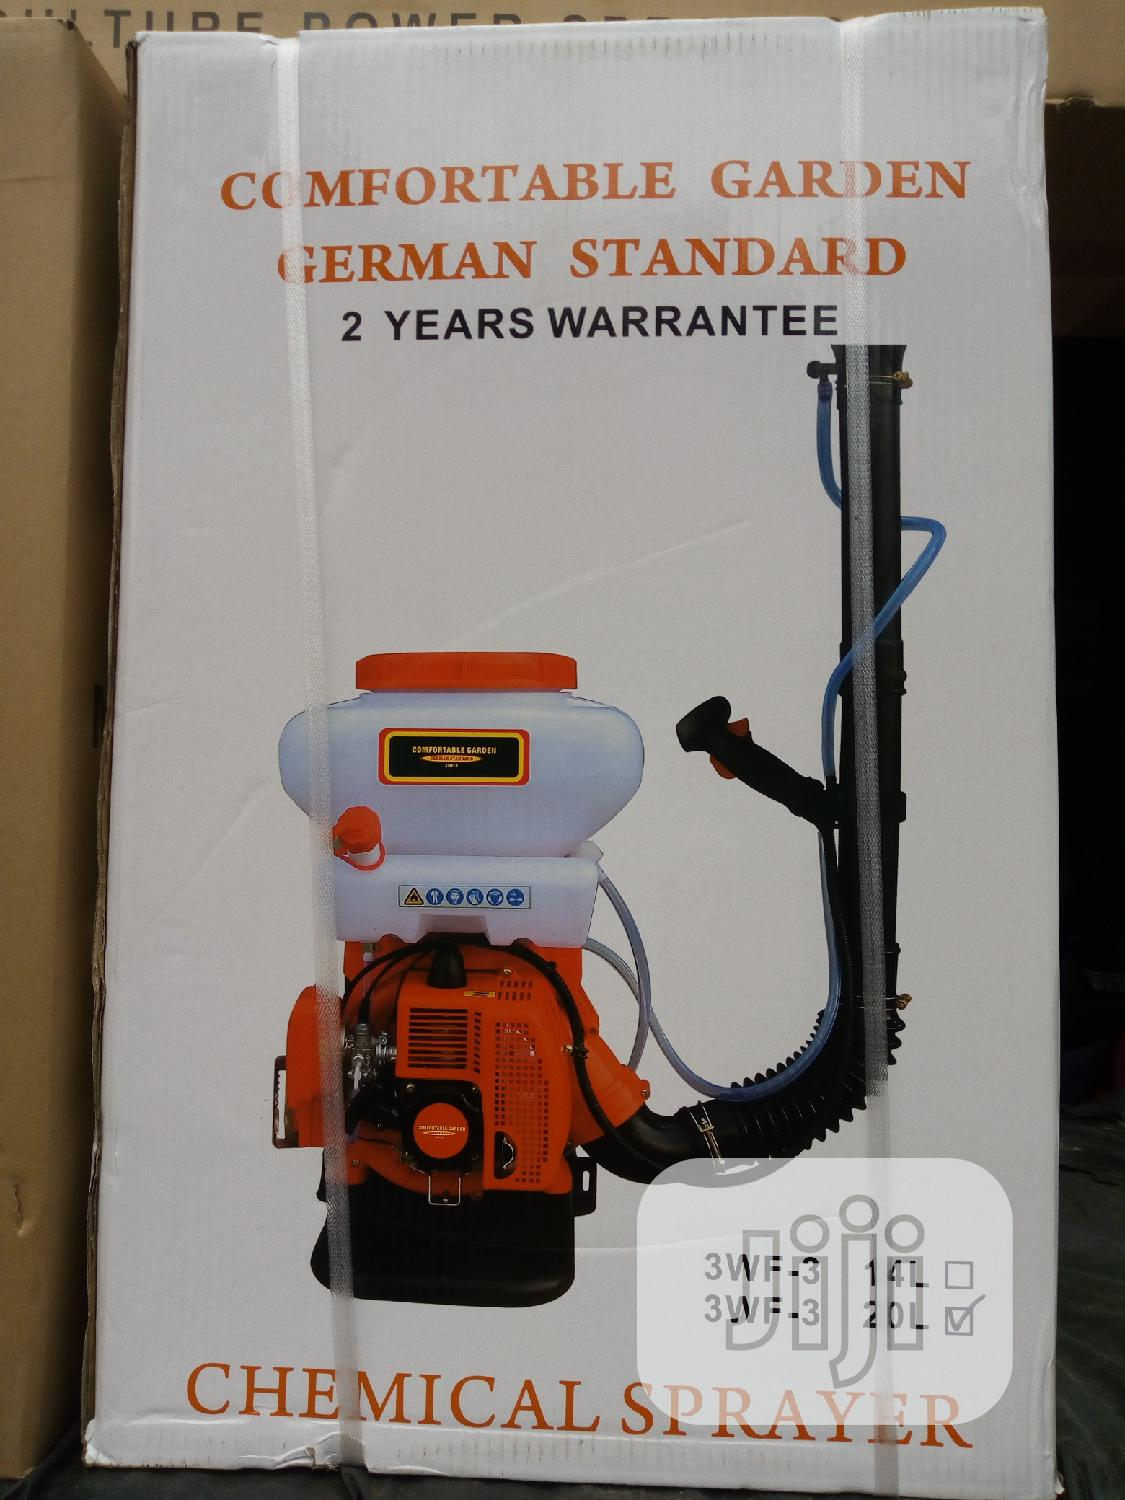 German Standard Comfortable Garden Pests Chemical Sprayer | Farm Machinery & Equipment for sale in Ojo, Lagos State, Nigeria